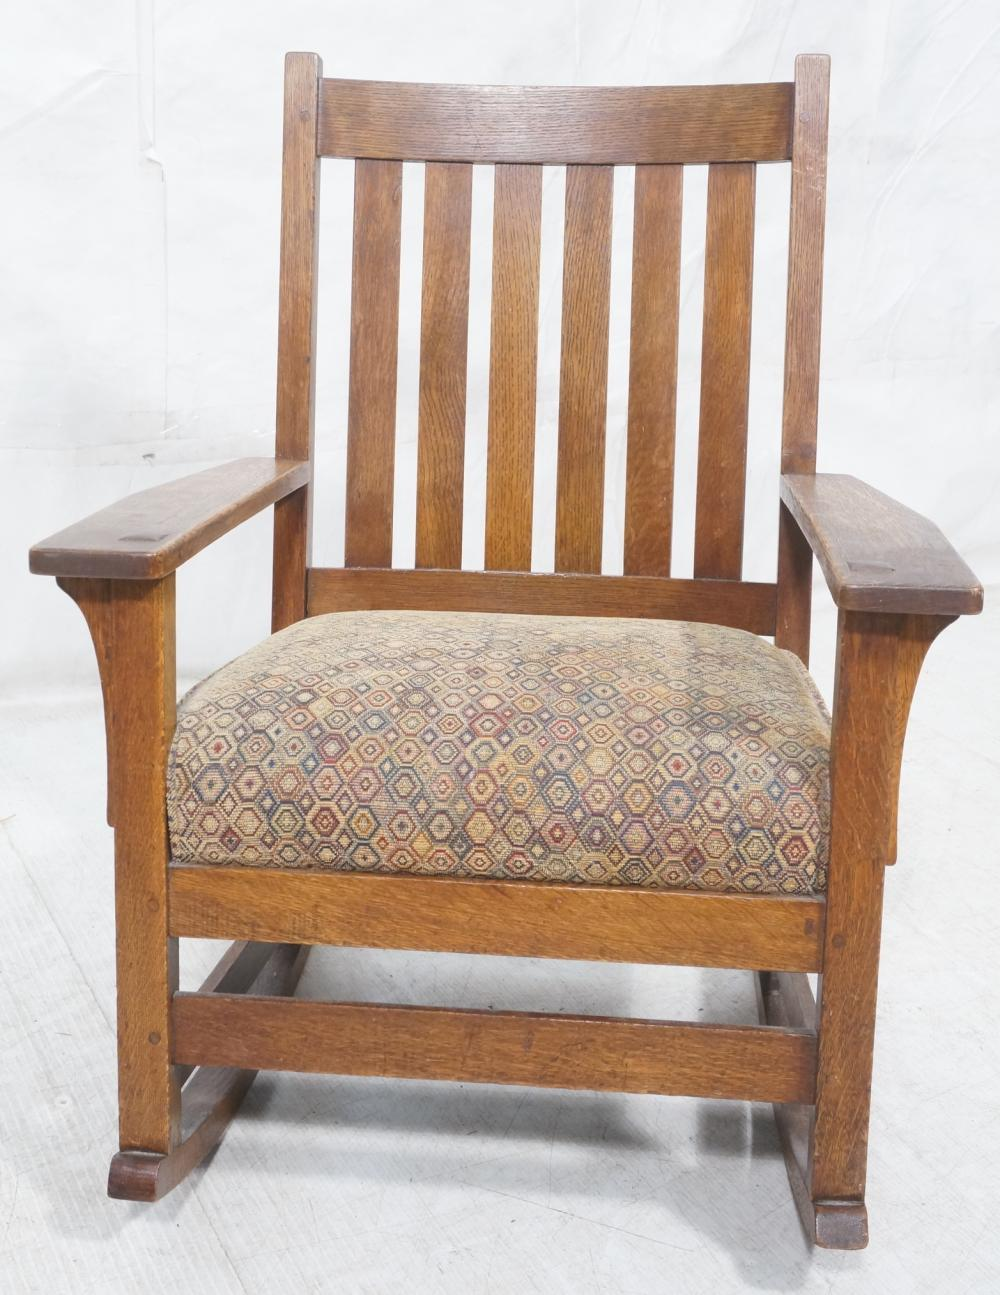 Miraculous Stickley Oak Arts Crafts Mission Rocking Chair Creativecarmelina Interior Chair Design Creativecarmelinacom